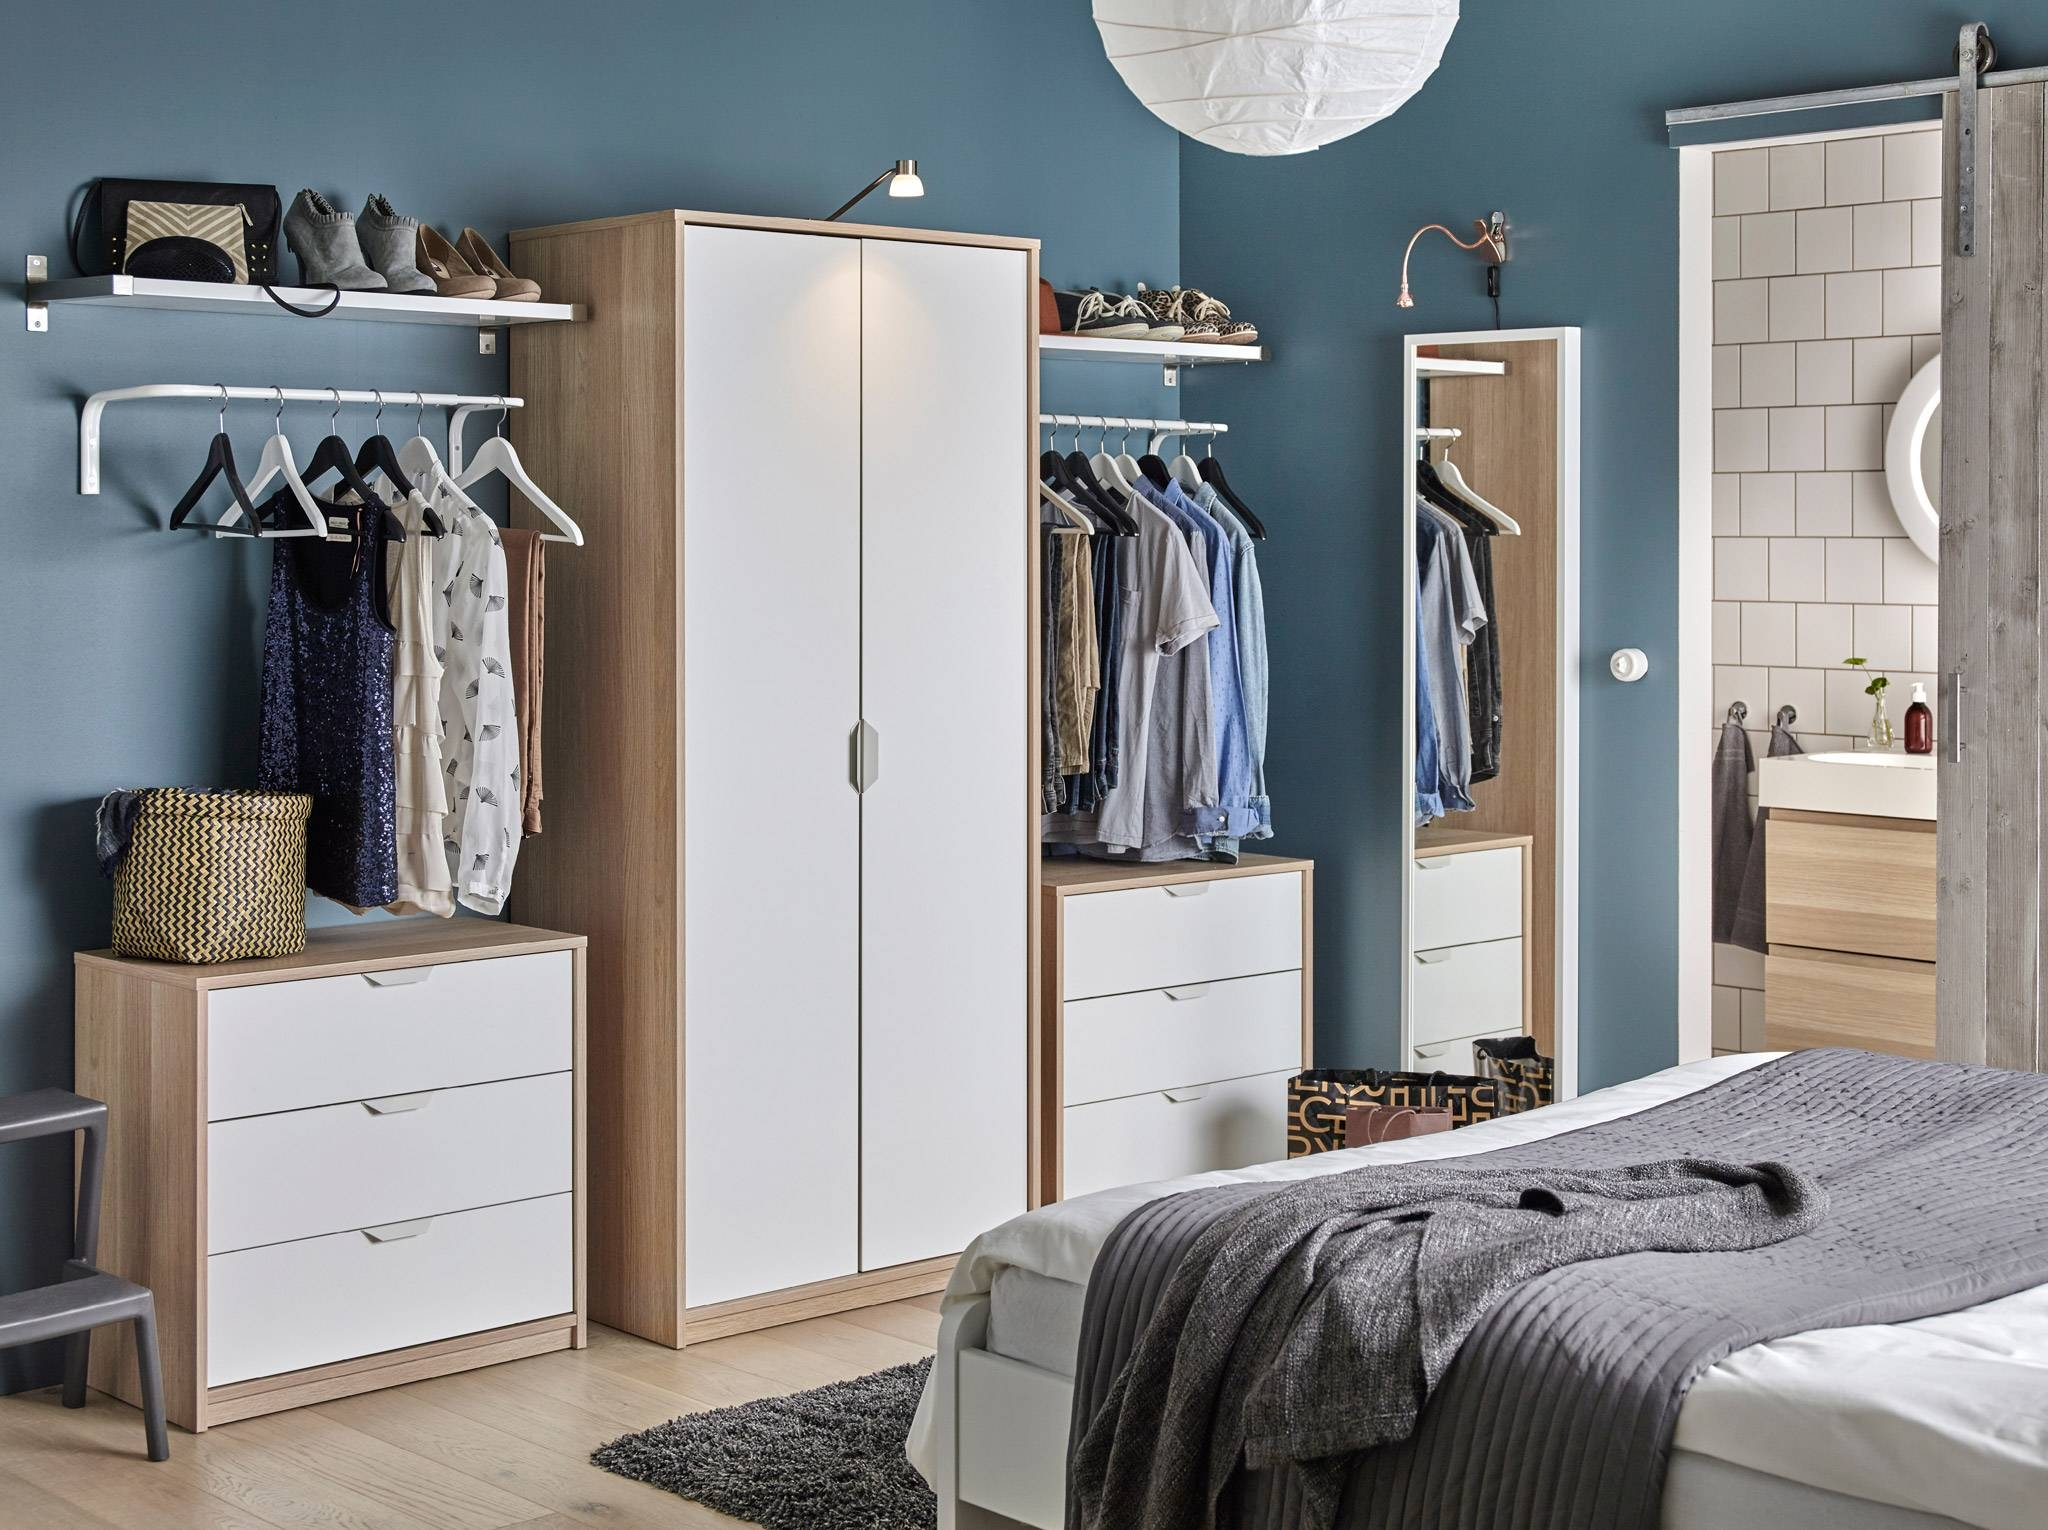 Bedroom Furniture & Ideas | Ikea pertaining to Wardrobe Drawers And Shelves Ikea (Image 4 of 30)